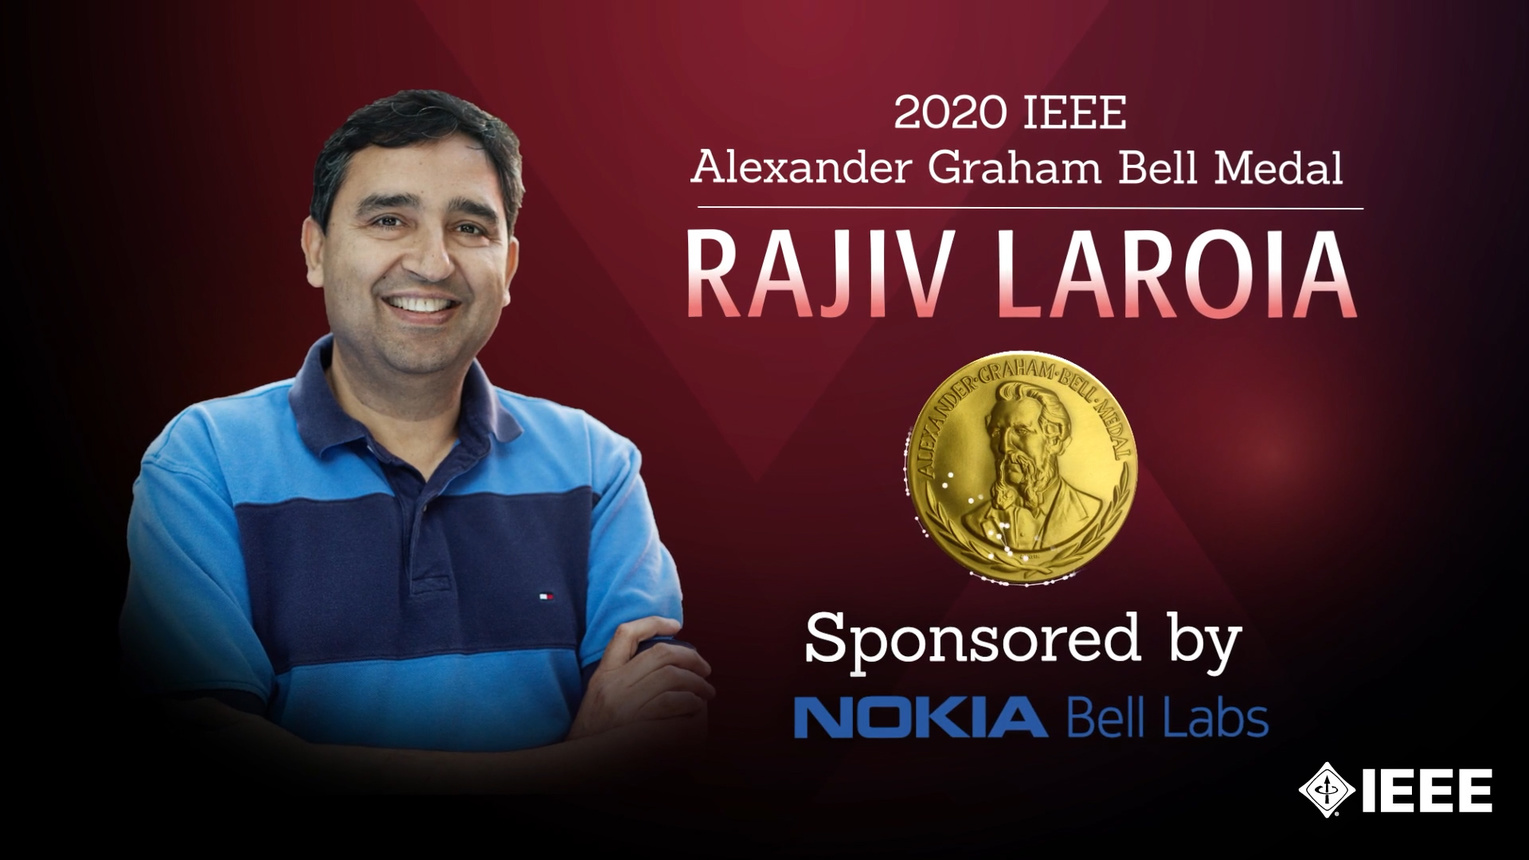 Honors 2020: Rajiv Laroia Wins the IEEE Alexander Graham Bell Medal